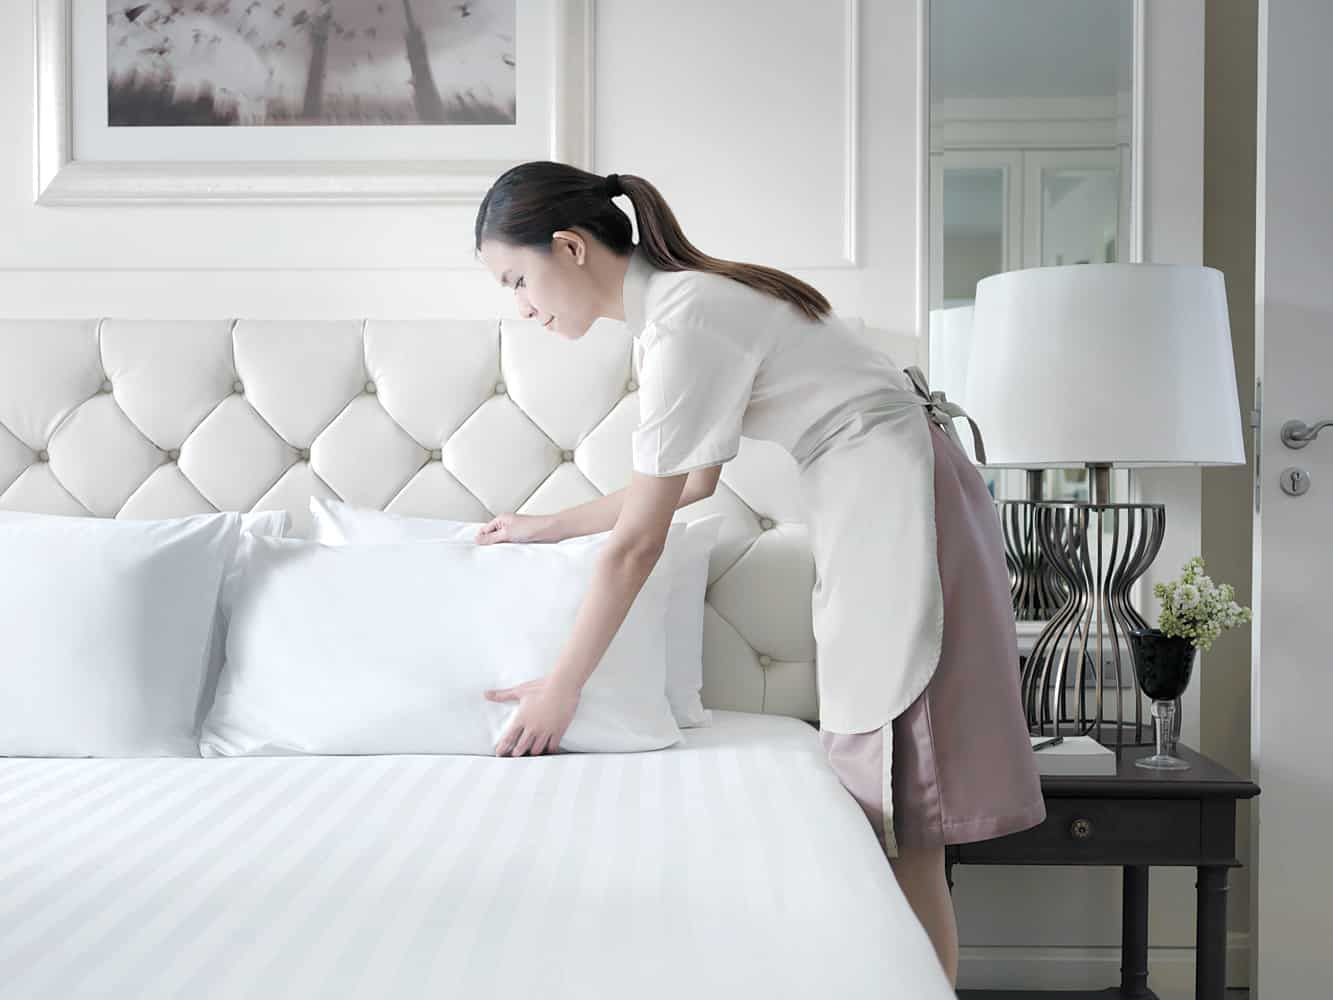 Bedroom Cleaning Service